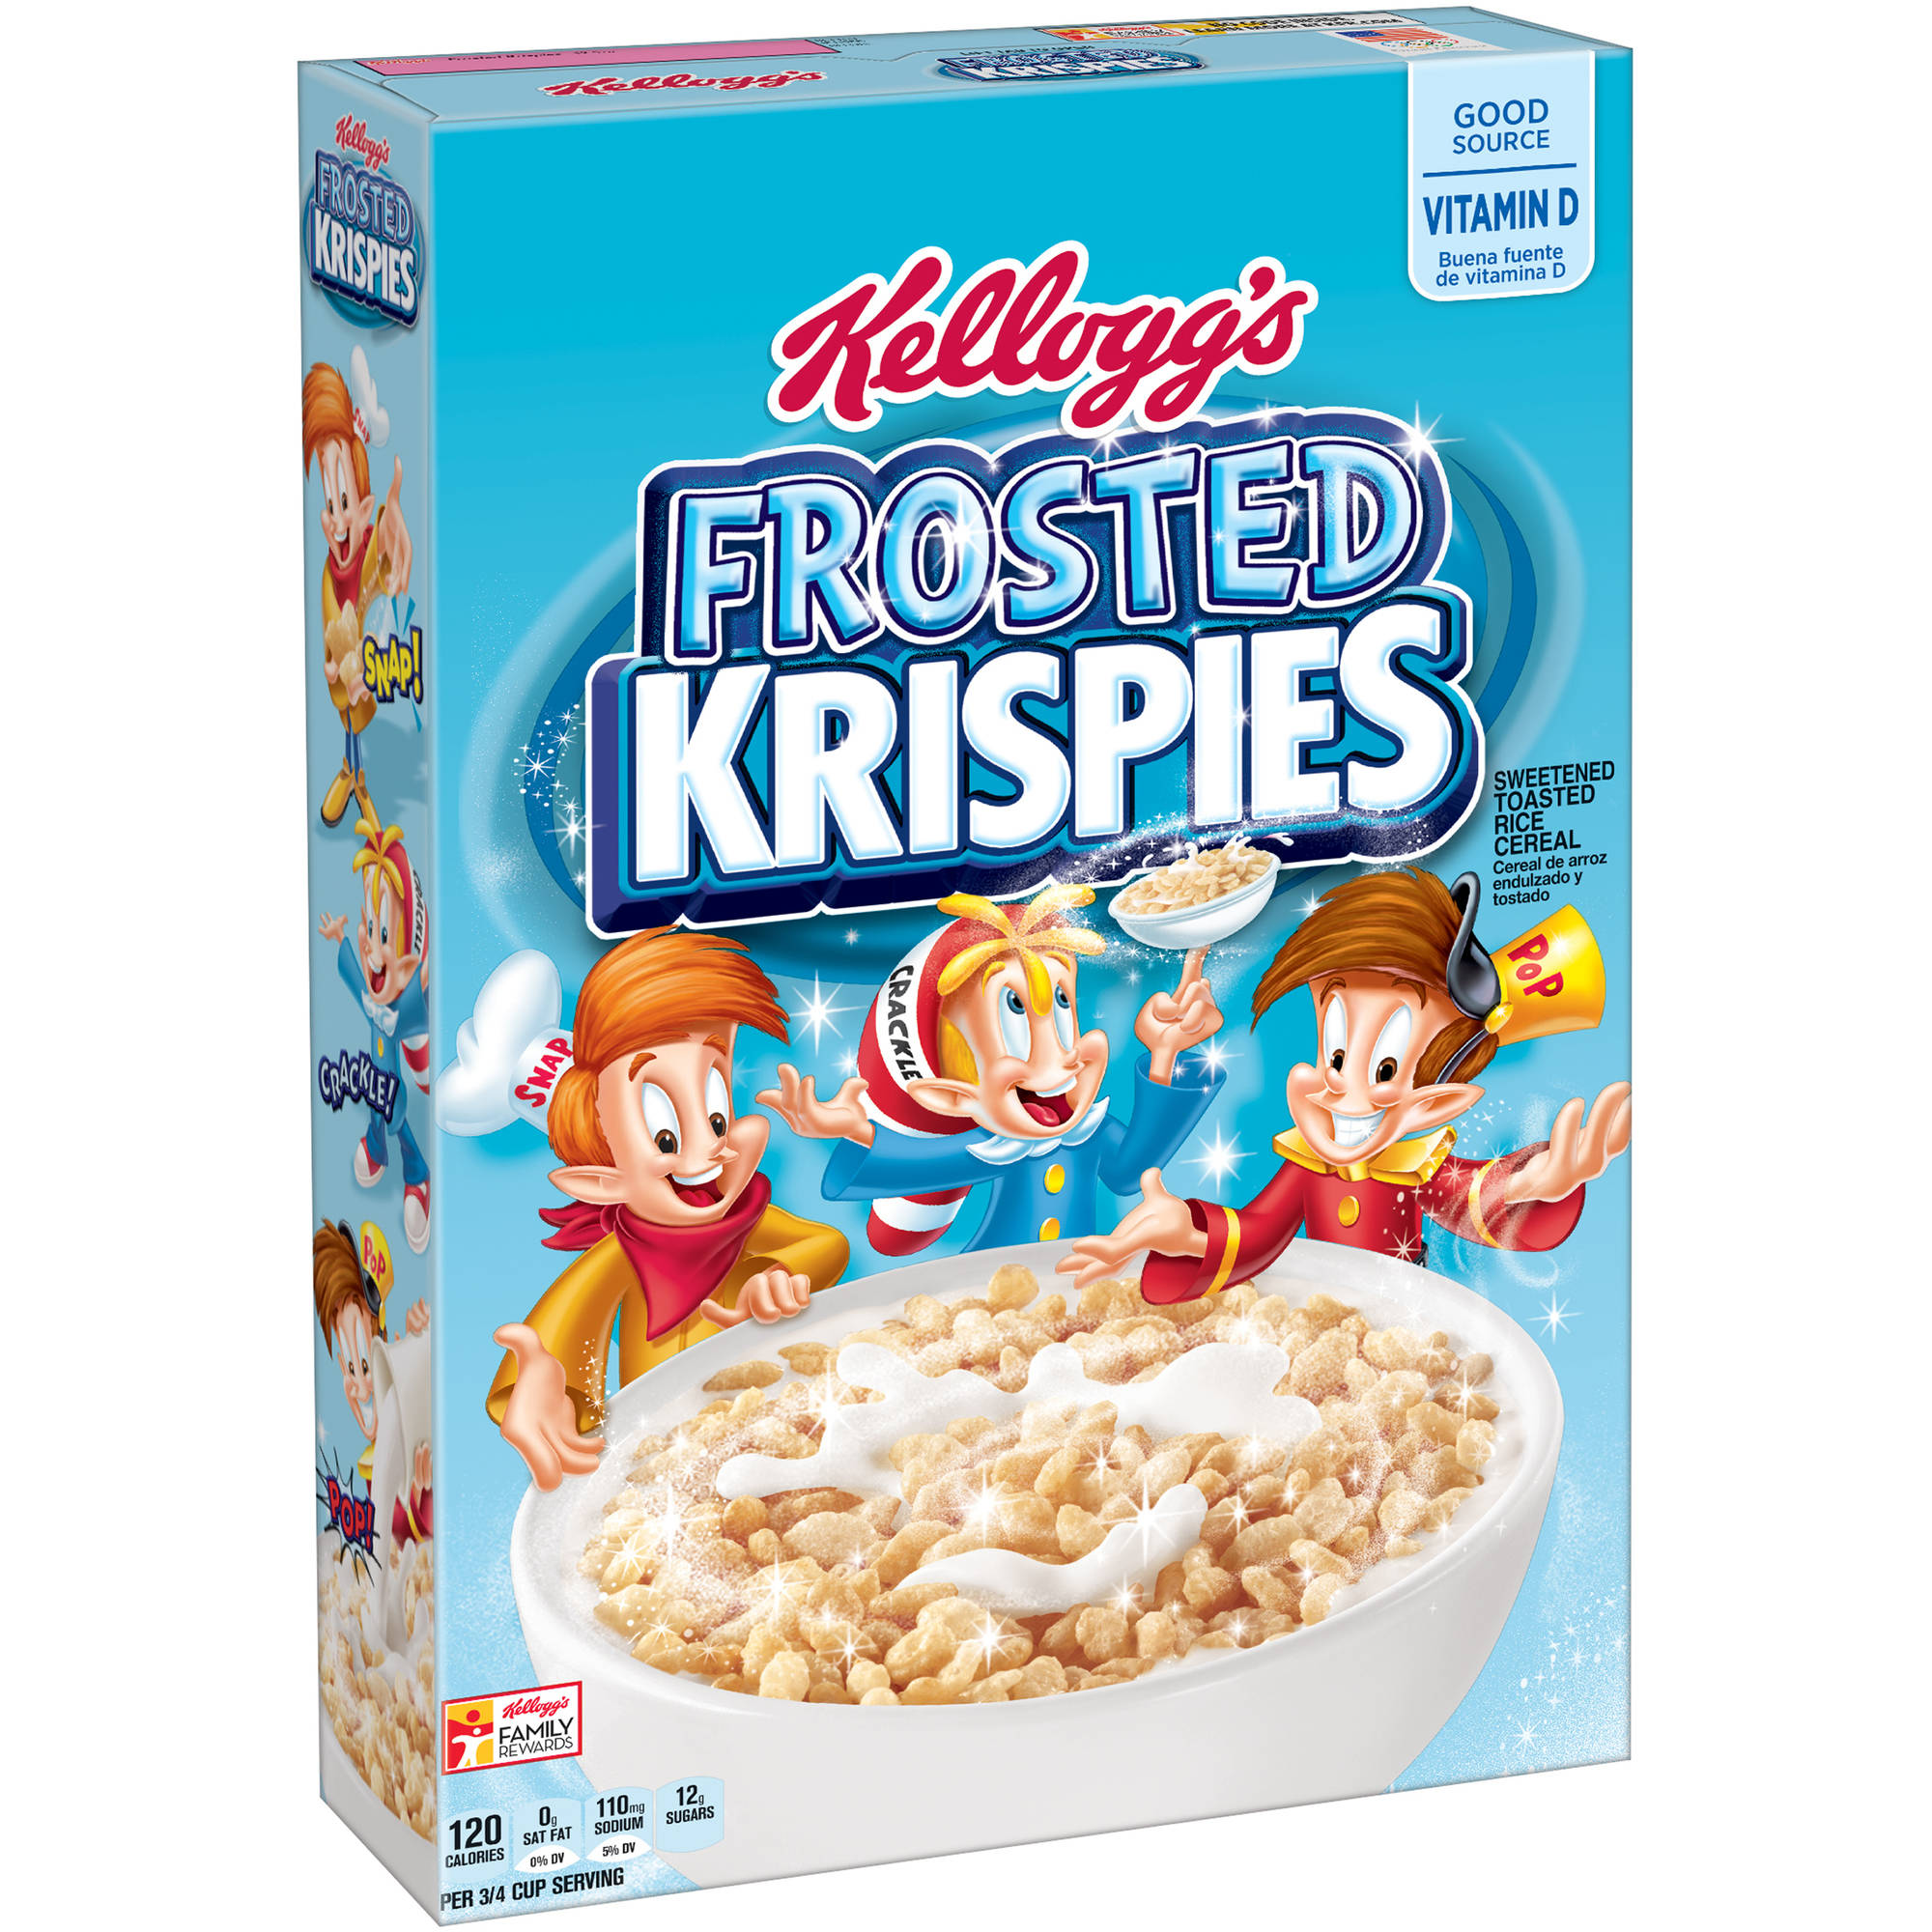 Kellogg's Frosted Krispies Toasted Rice Cereal, 12.5 Oz